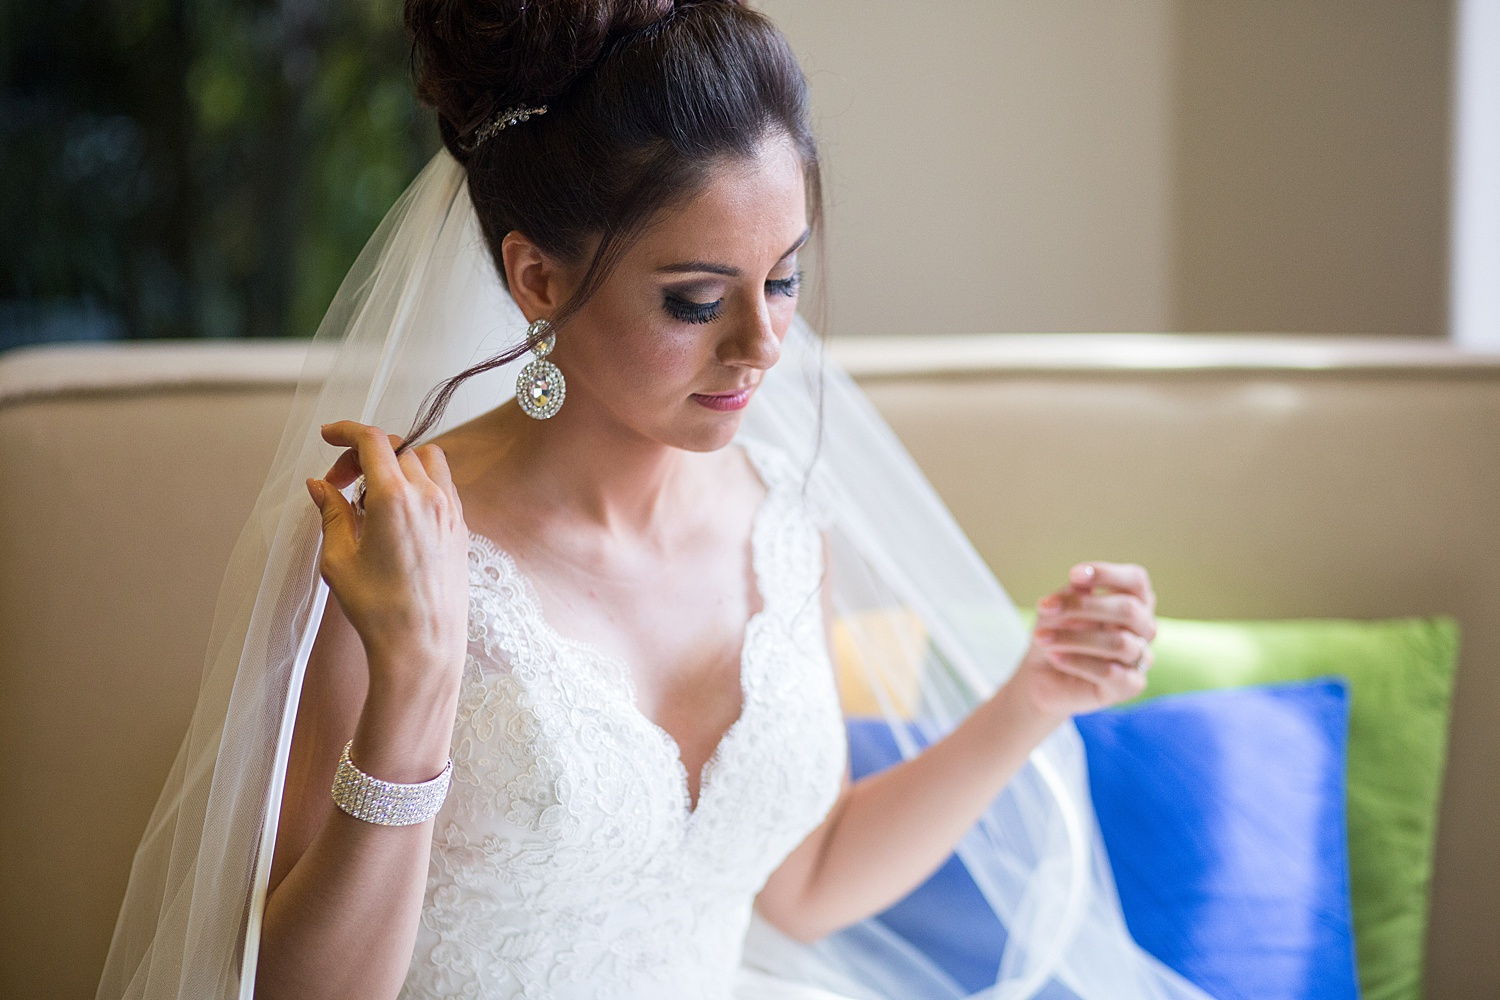 Tips to Achieve Memorable Getting Ready Photos at Any Wedding